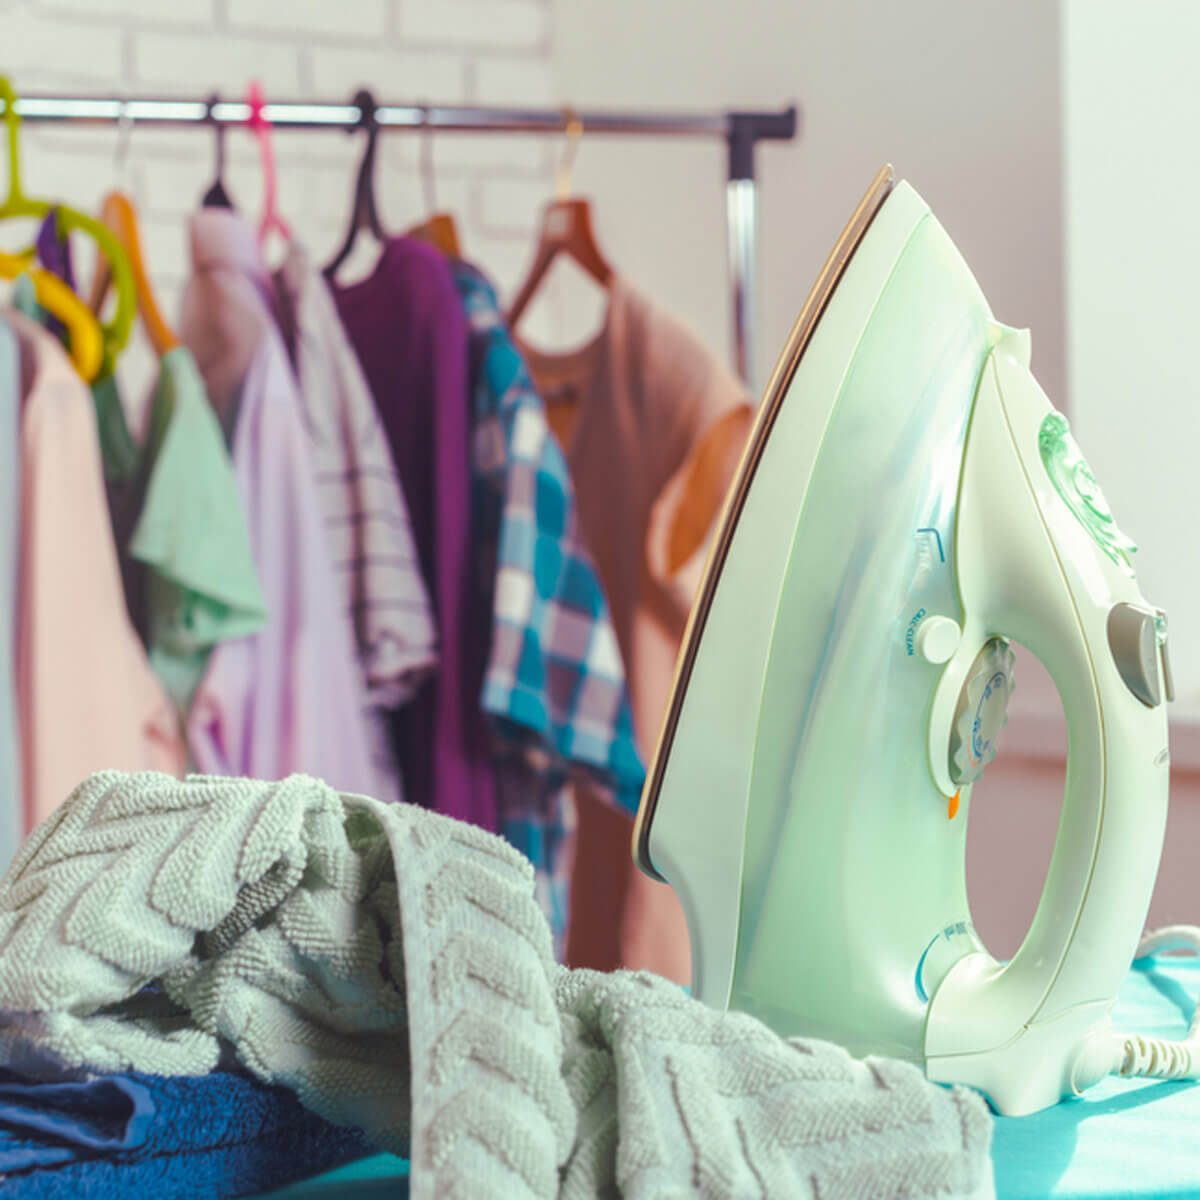 13 Laundry Tips For Washing Your Clothes The Family Handyman